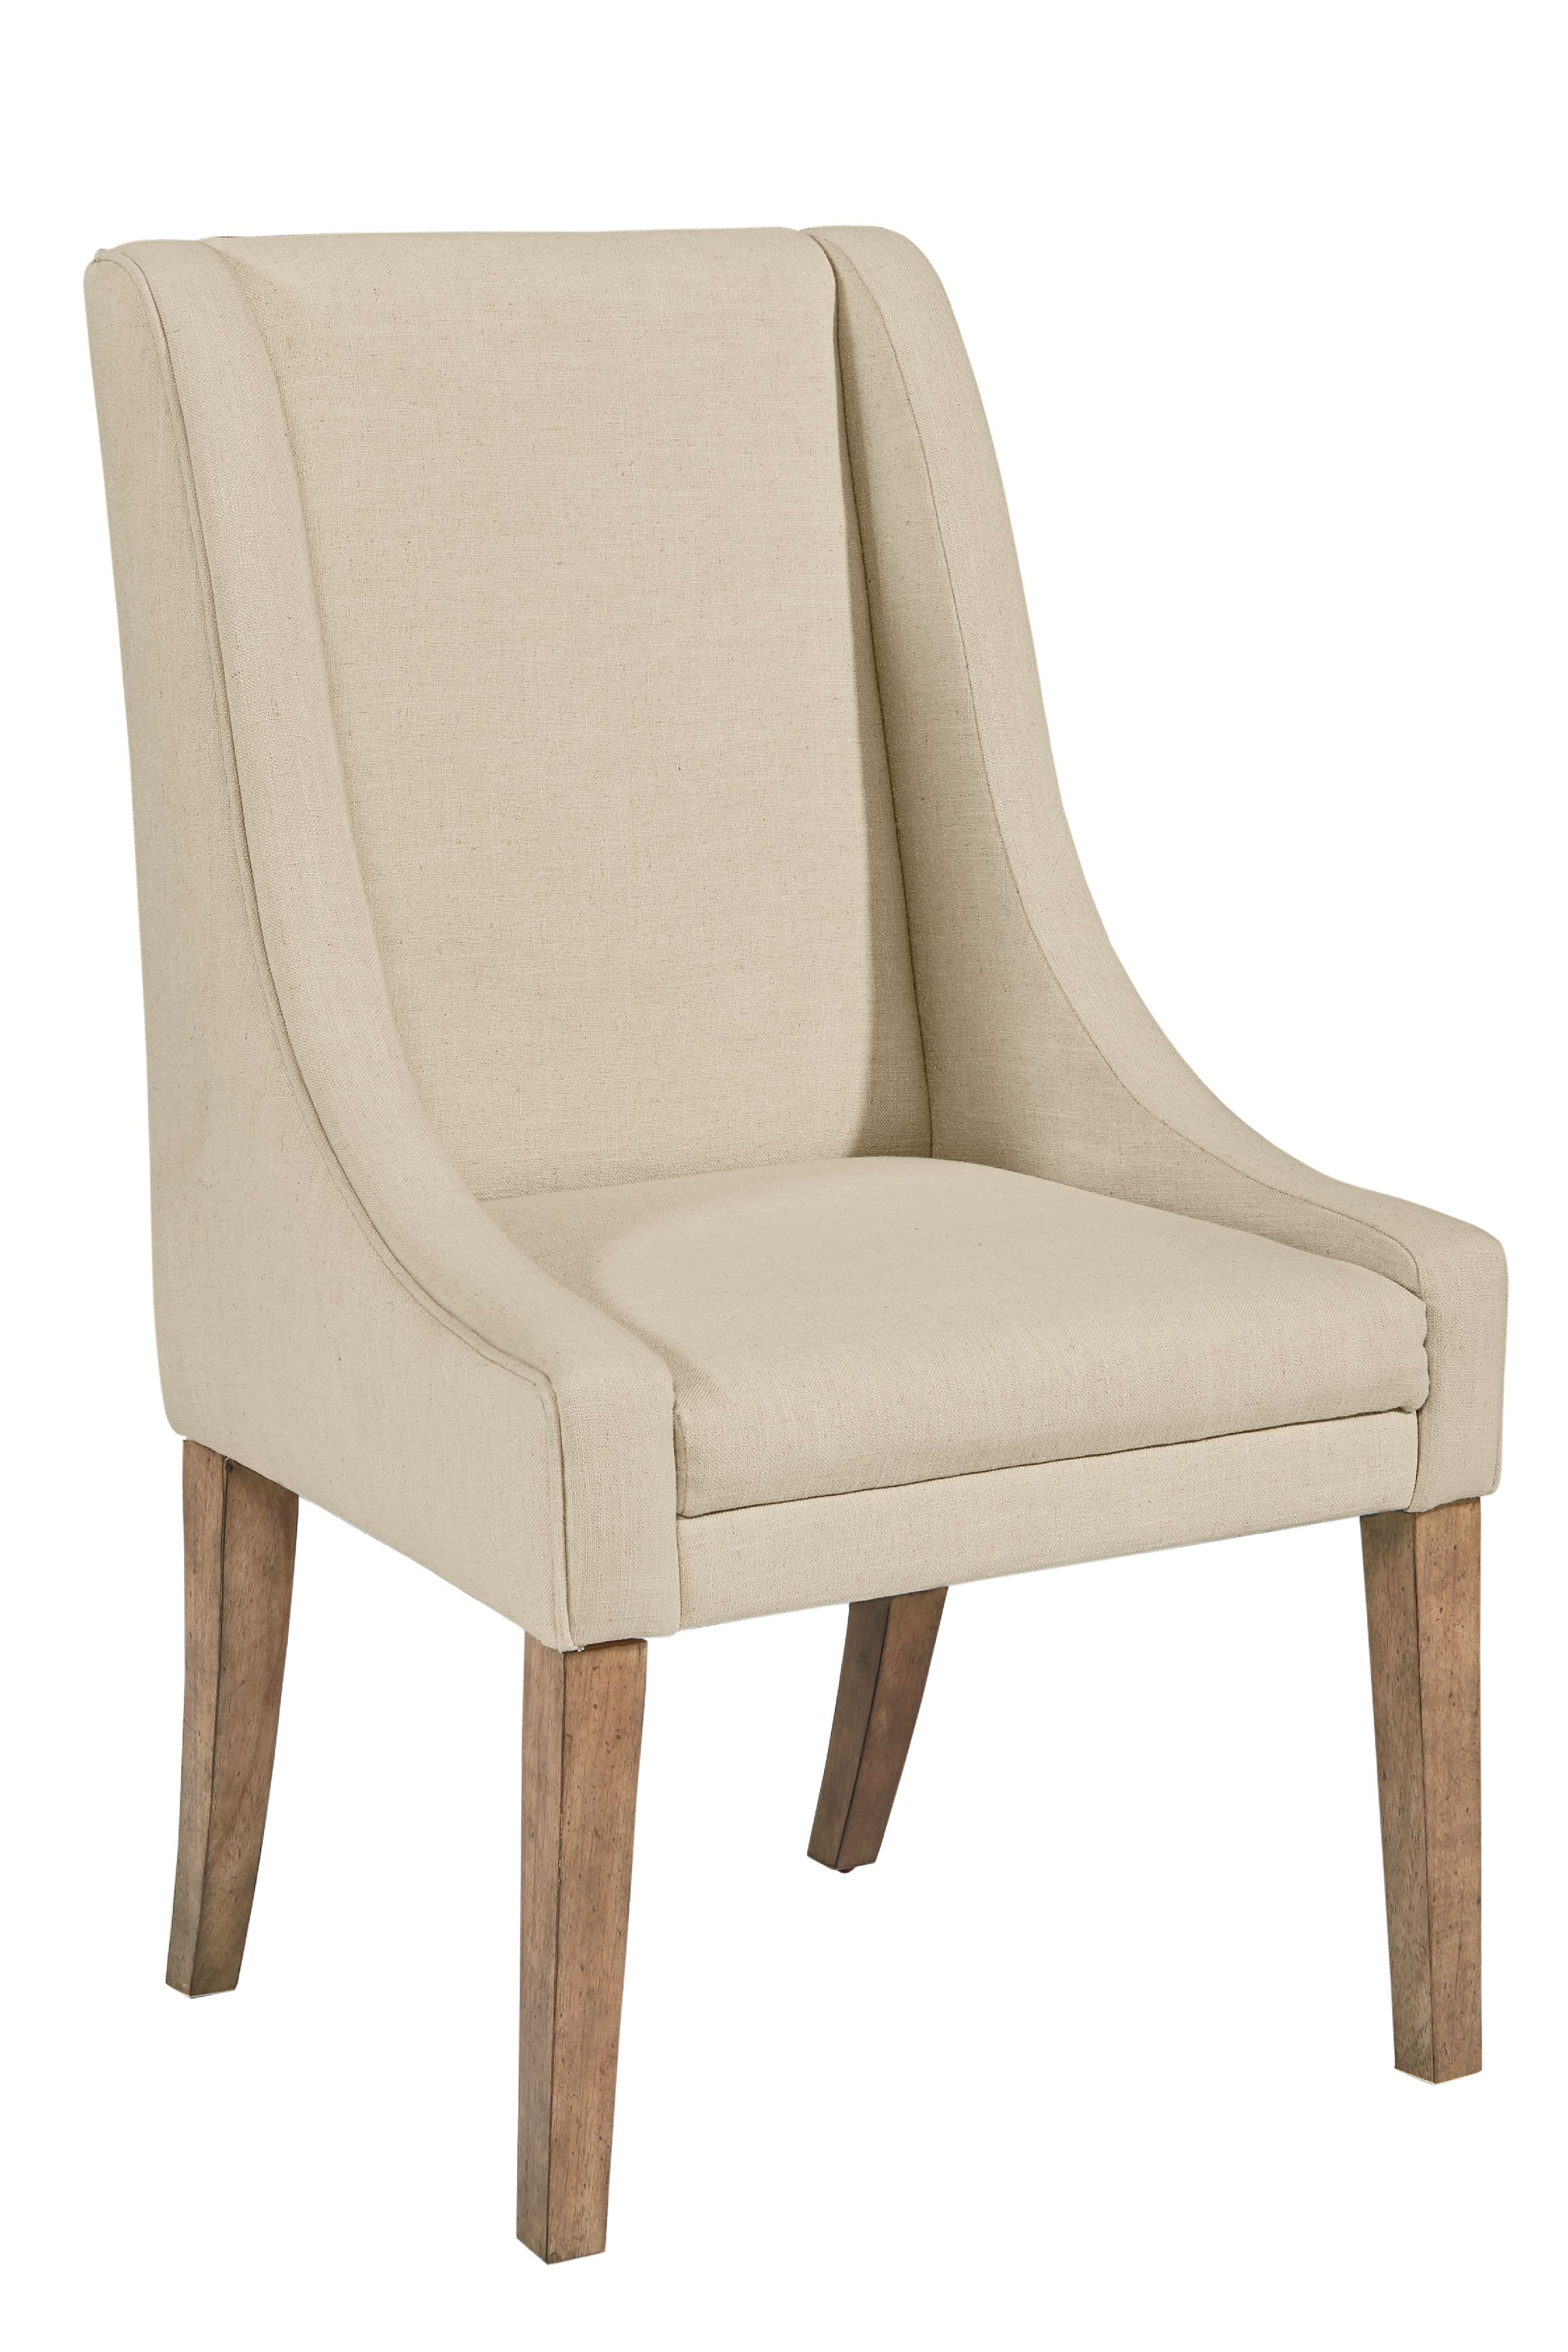 This comfortable Upholstered Demi-Wing Side Chair from Magnolia ...